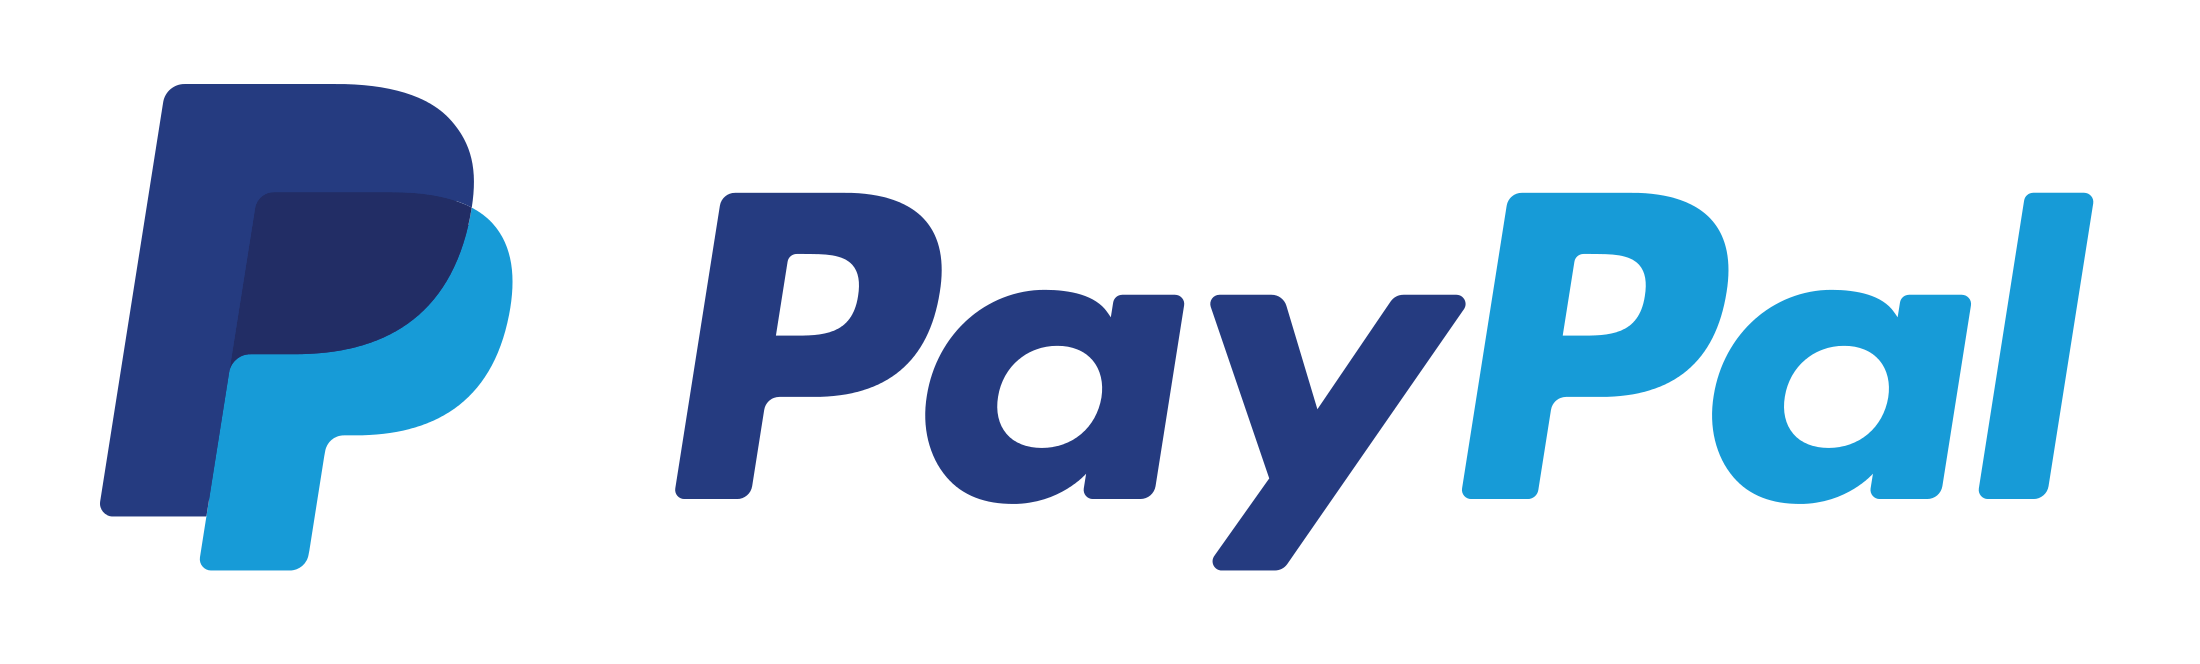 Meaning Paypal logo and symbol  history and evolution